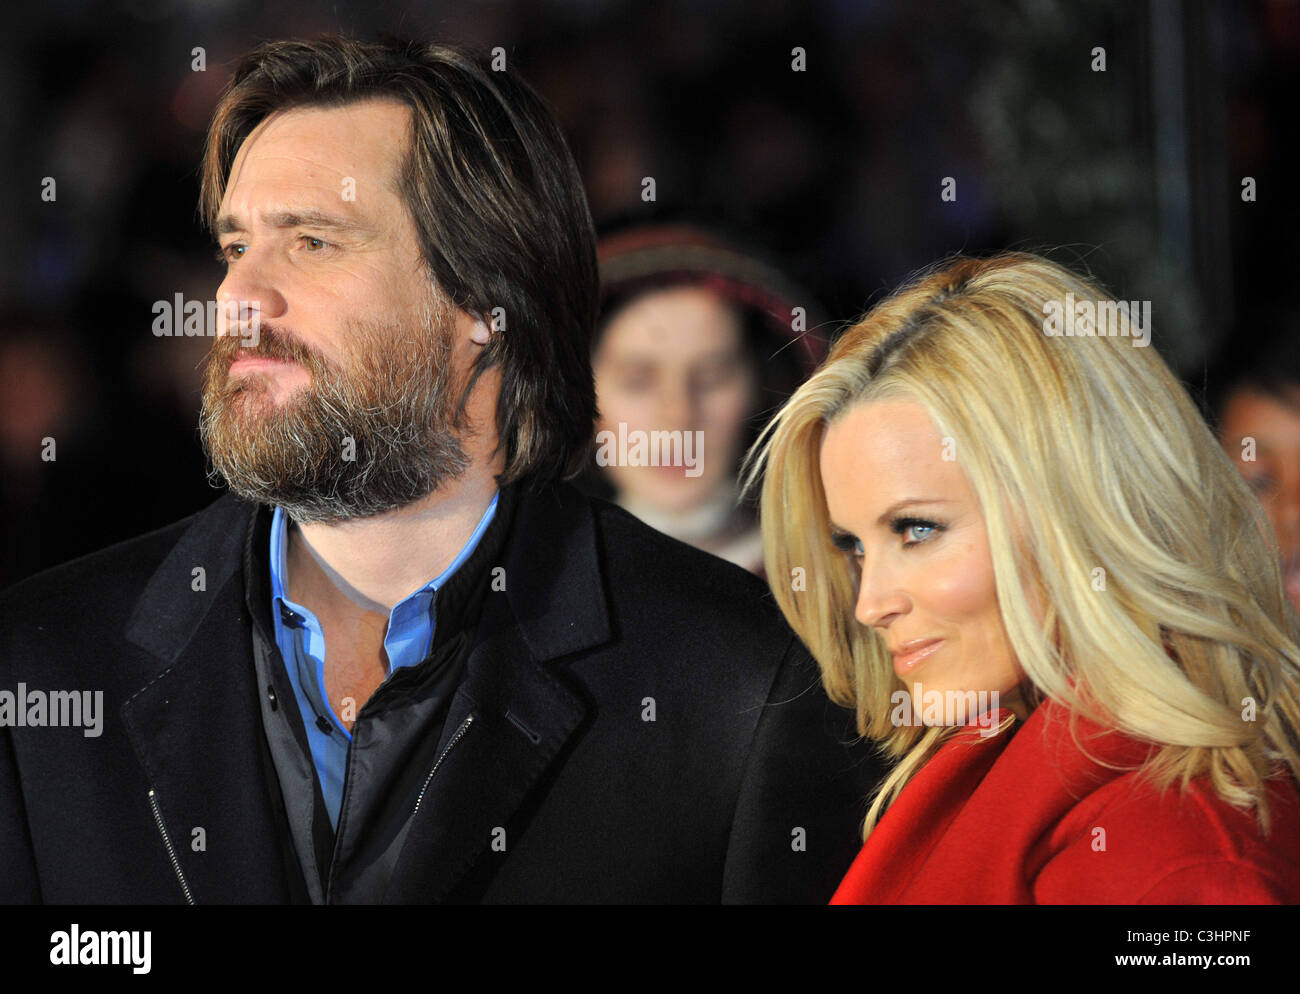 Jim Carrey Christmas Carol.Jim Carrey And Jennifer Mccarthy A Christmas Carol World